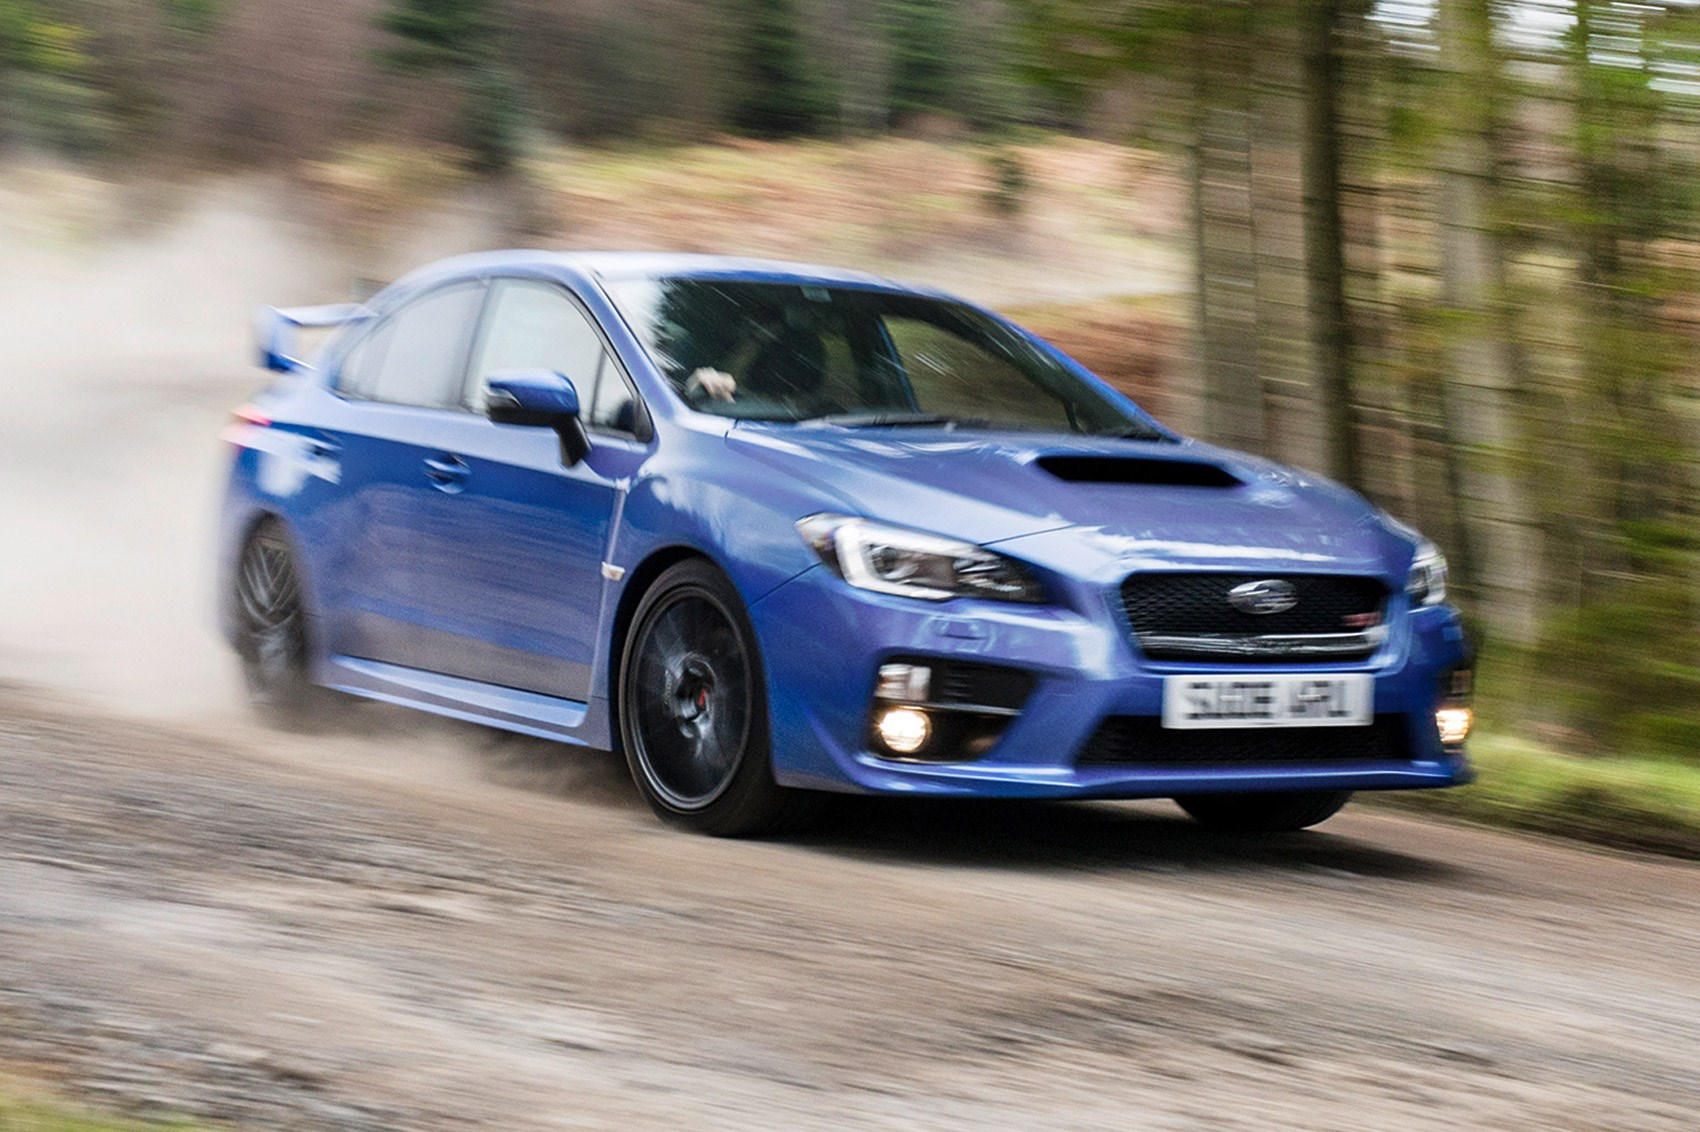 Subaru WRX STI (2016) long-term test review by CAR Magazine